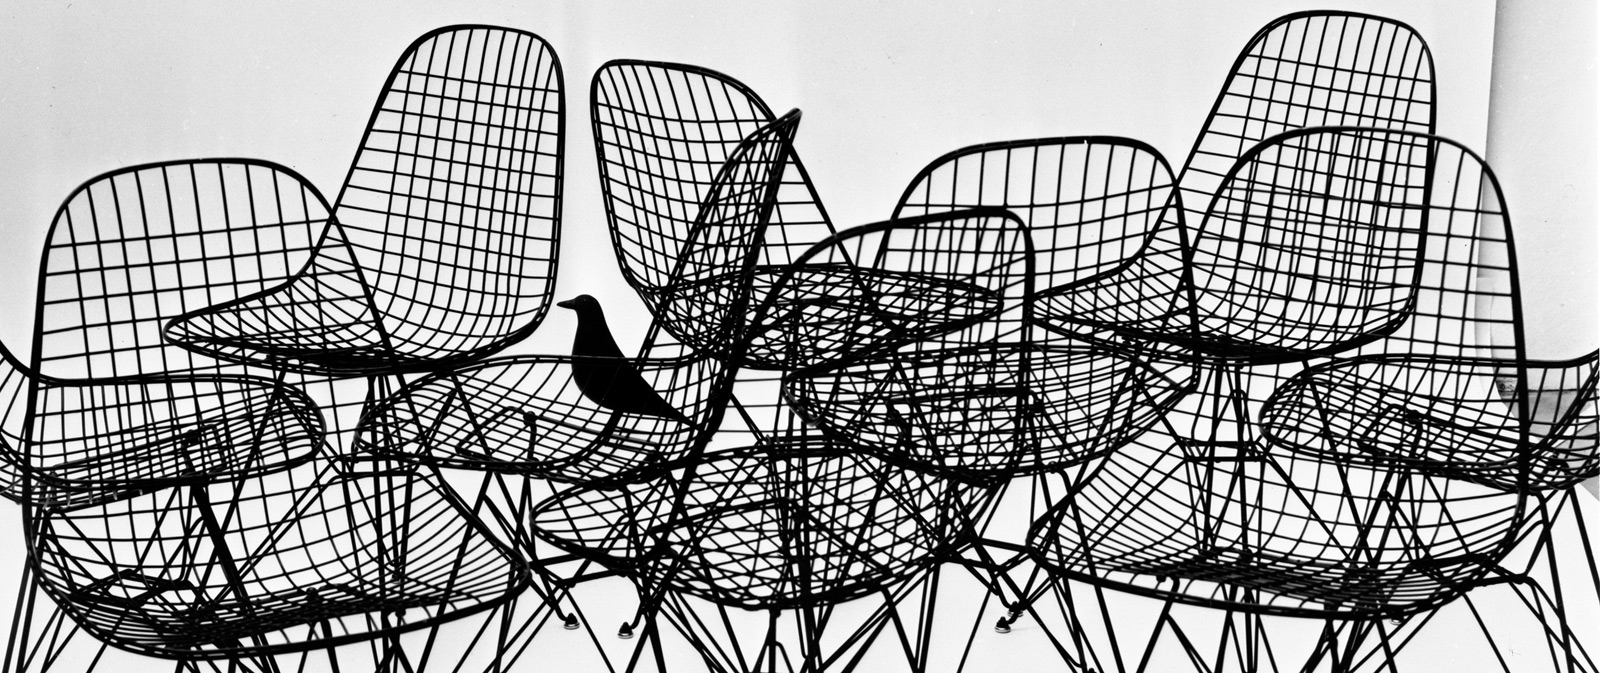 Ray And Charles Eames The World Of Charles And Ray Eames Christie S